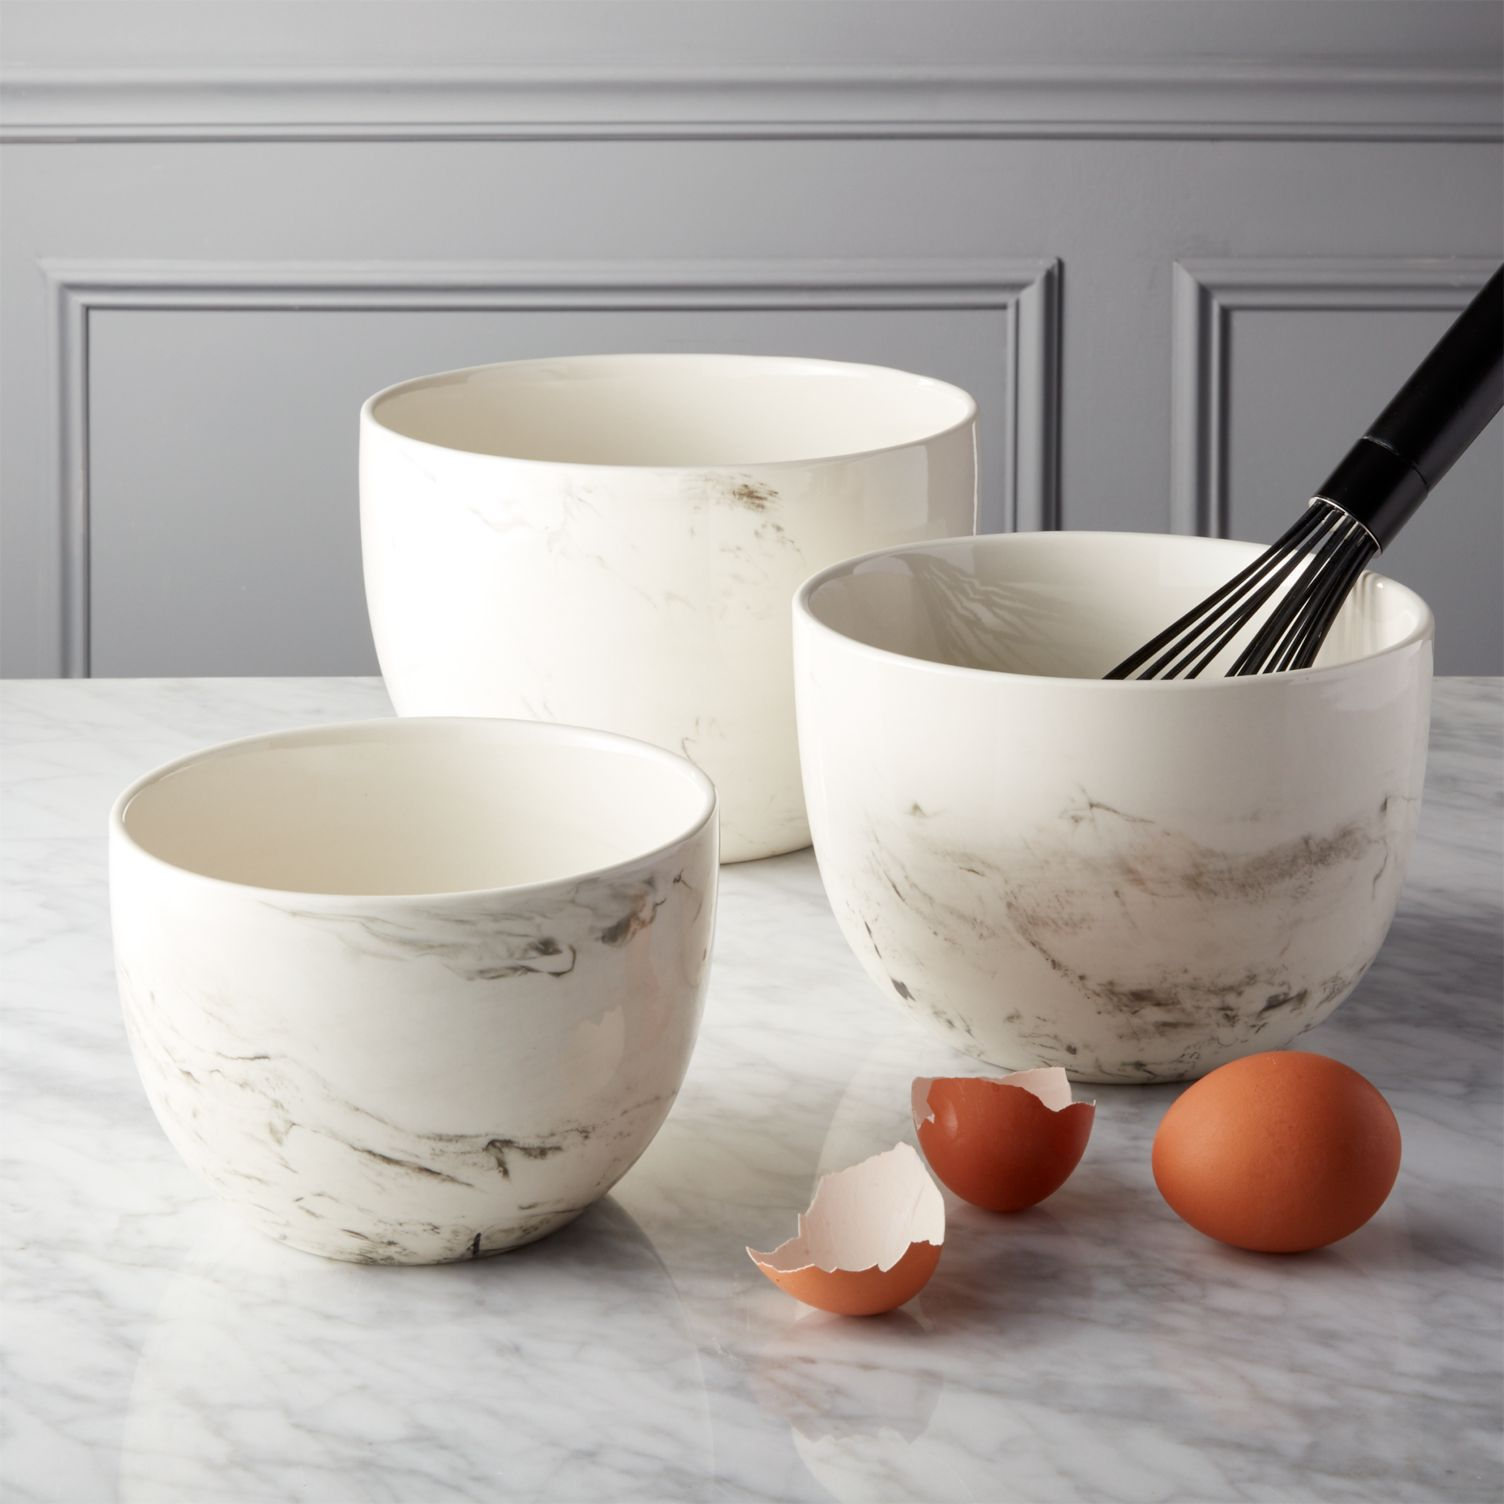 Set of three white stoneware mixing bowls in small, medium, and large—all by CB2.